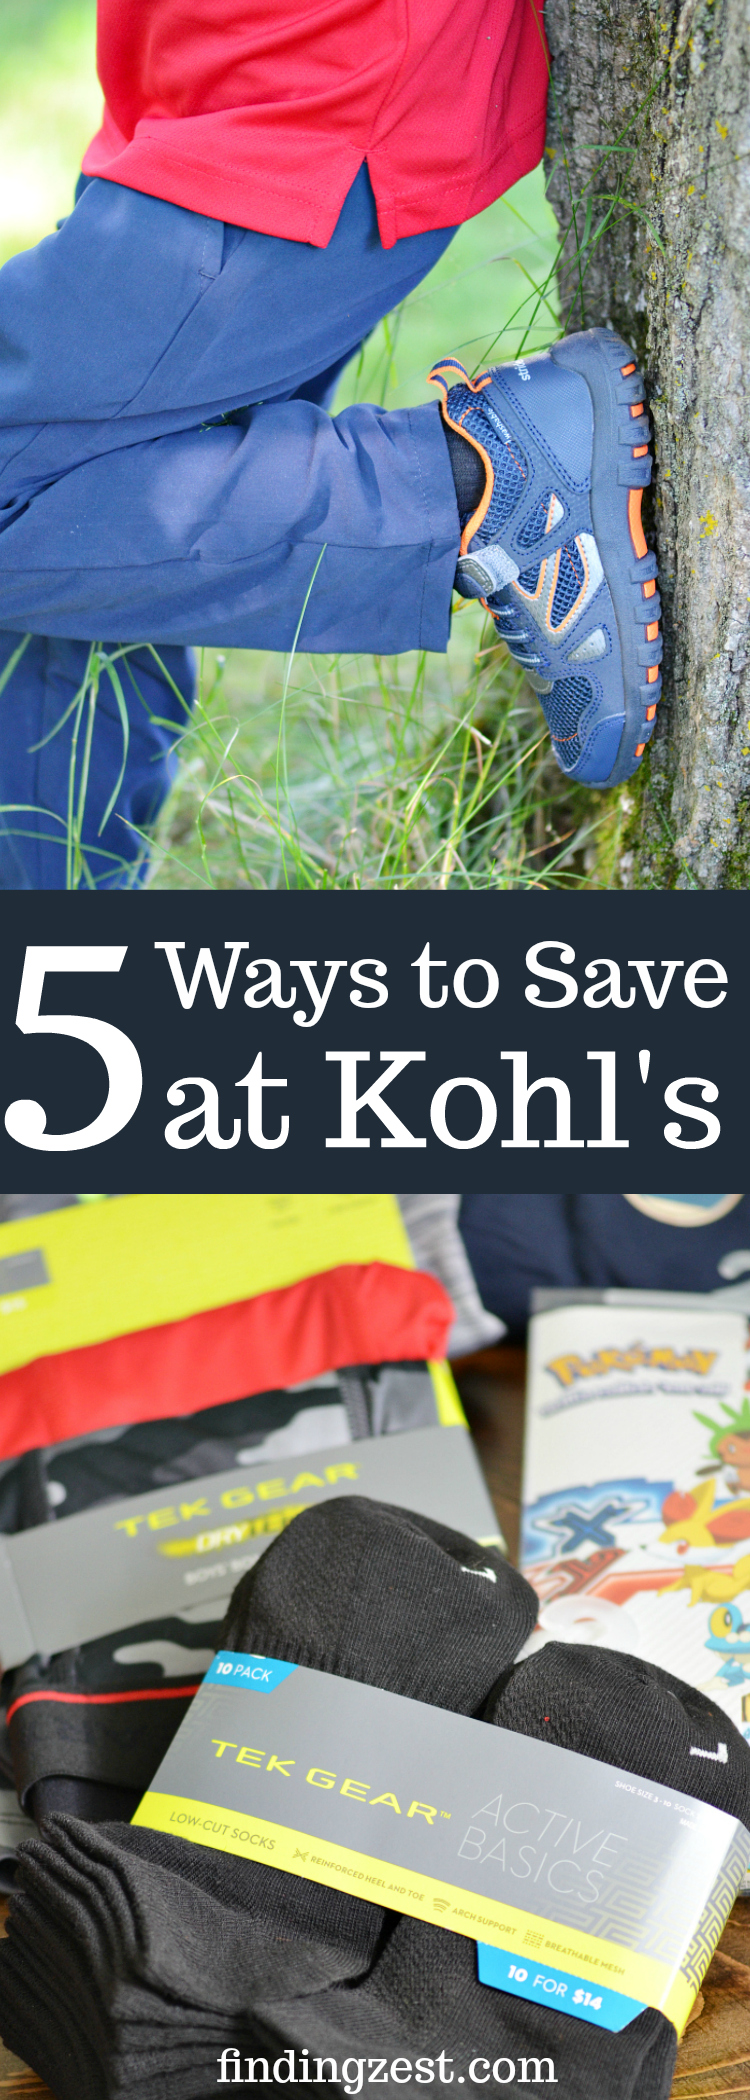 Learn 5 easy ways to save at Kohl's and get the best deals for back to school! Score awesome apparel, shoes and other necessities to bring your A game to win the first day of school.